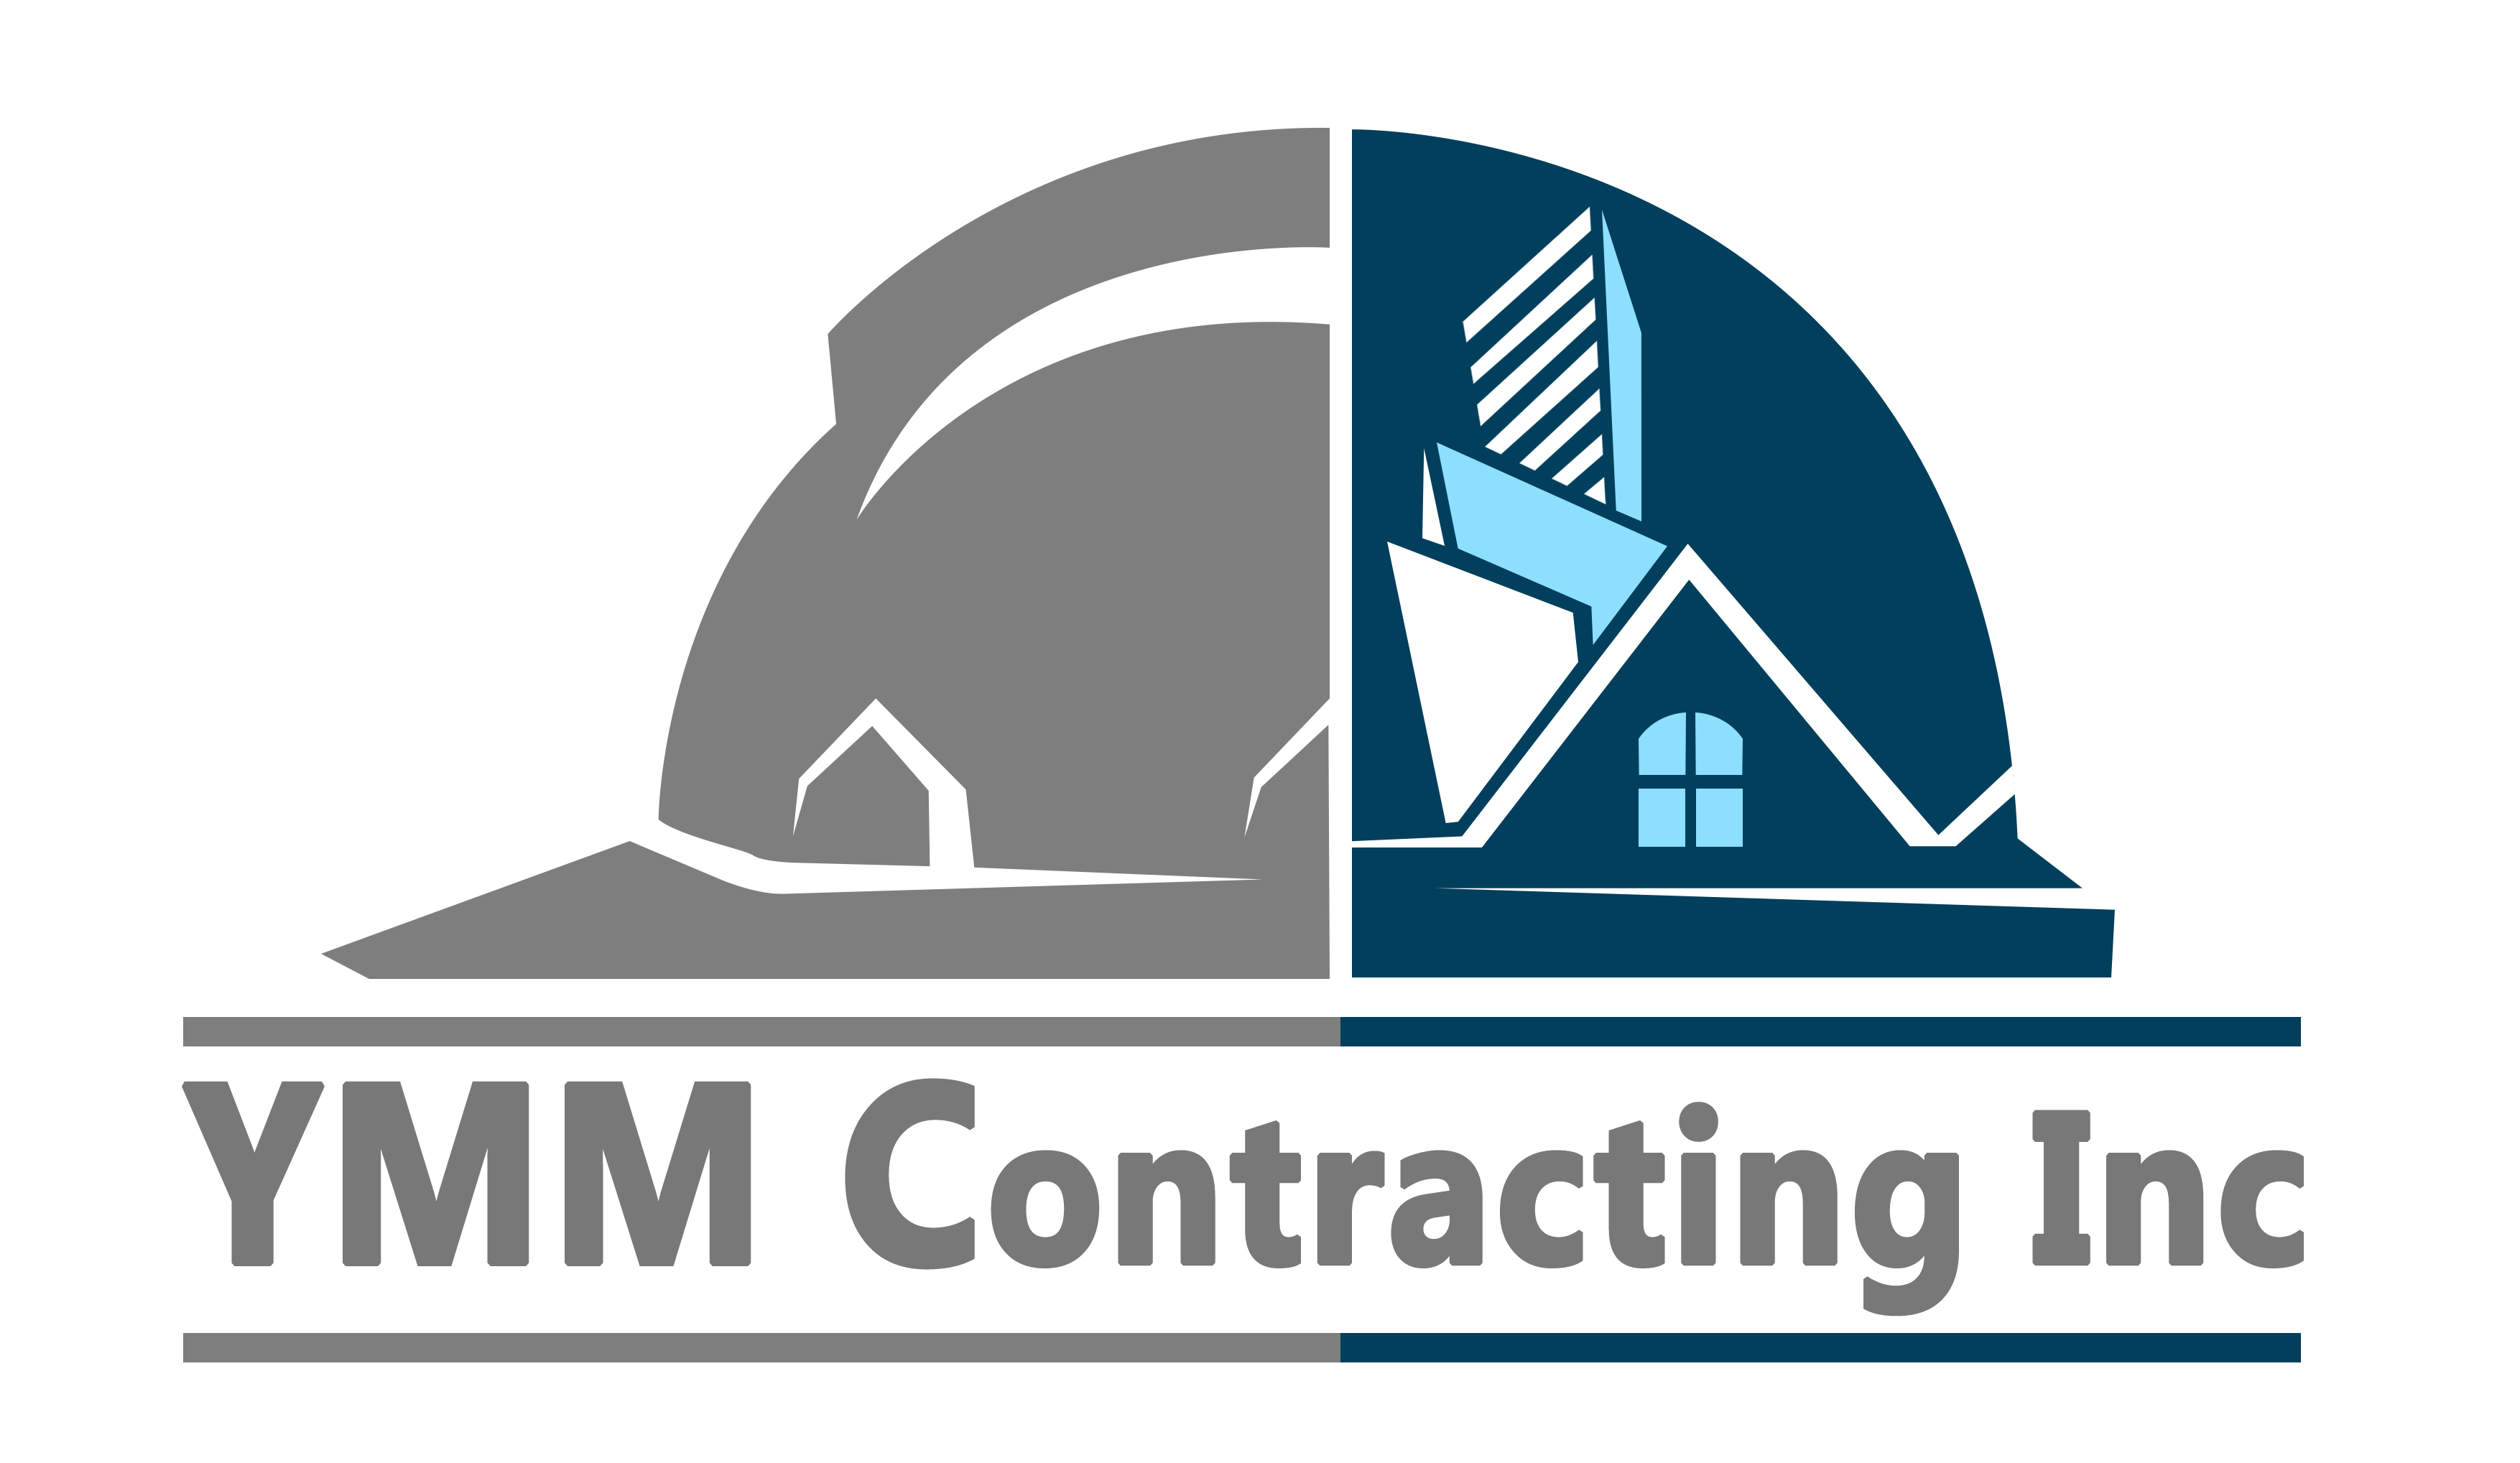 Fort McMurray Home Builder: YMM Contracting Inc.